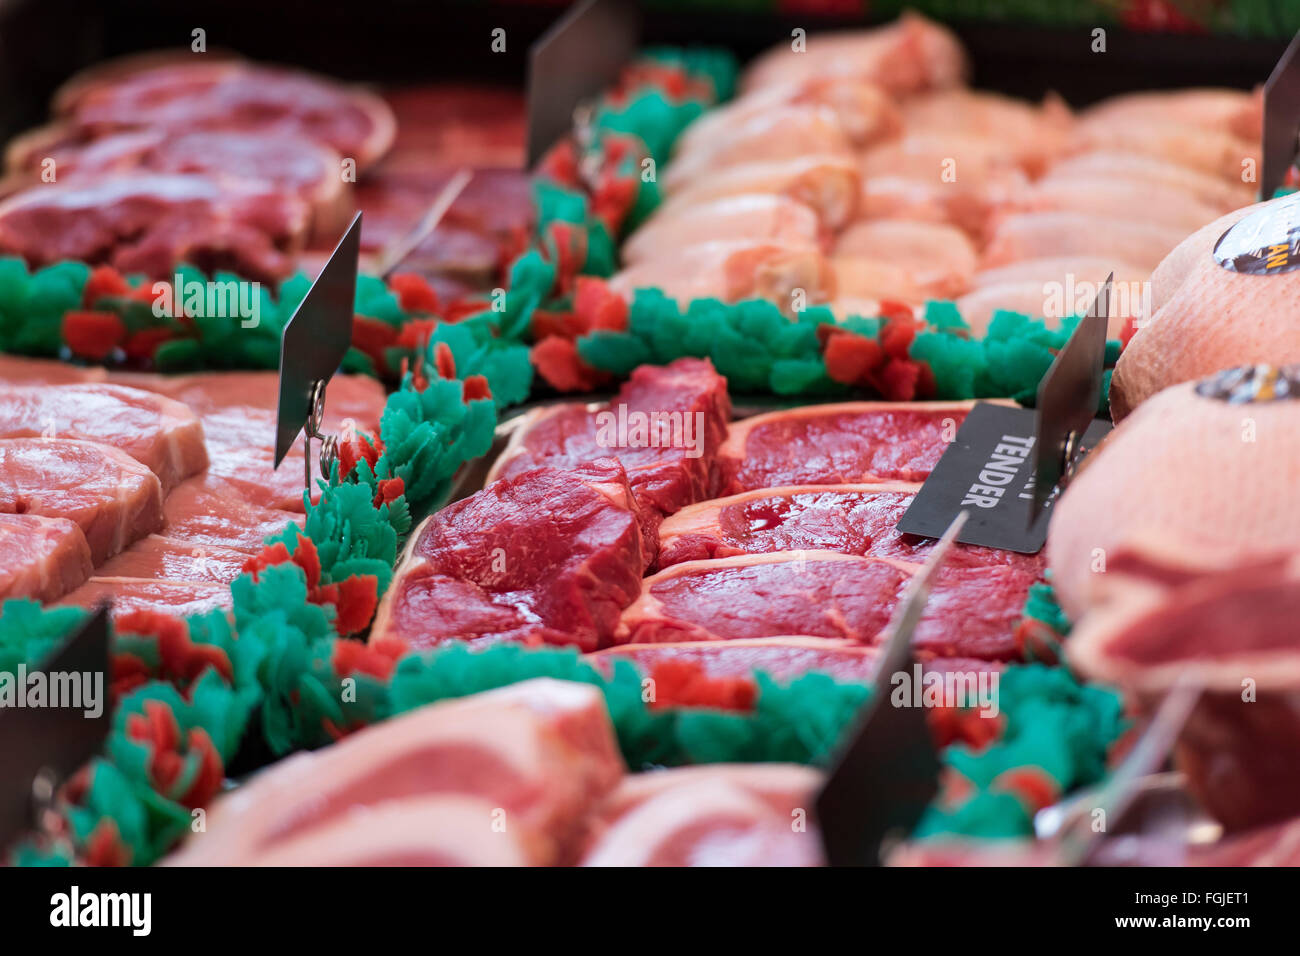 Red meat on display in a butcher's shop window. - Stock Image